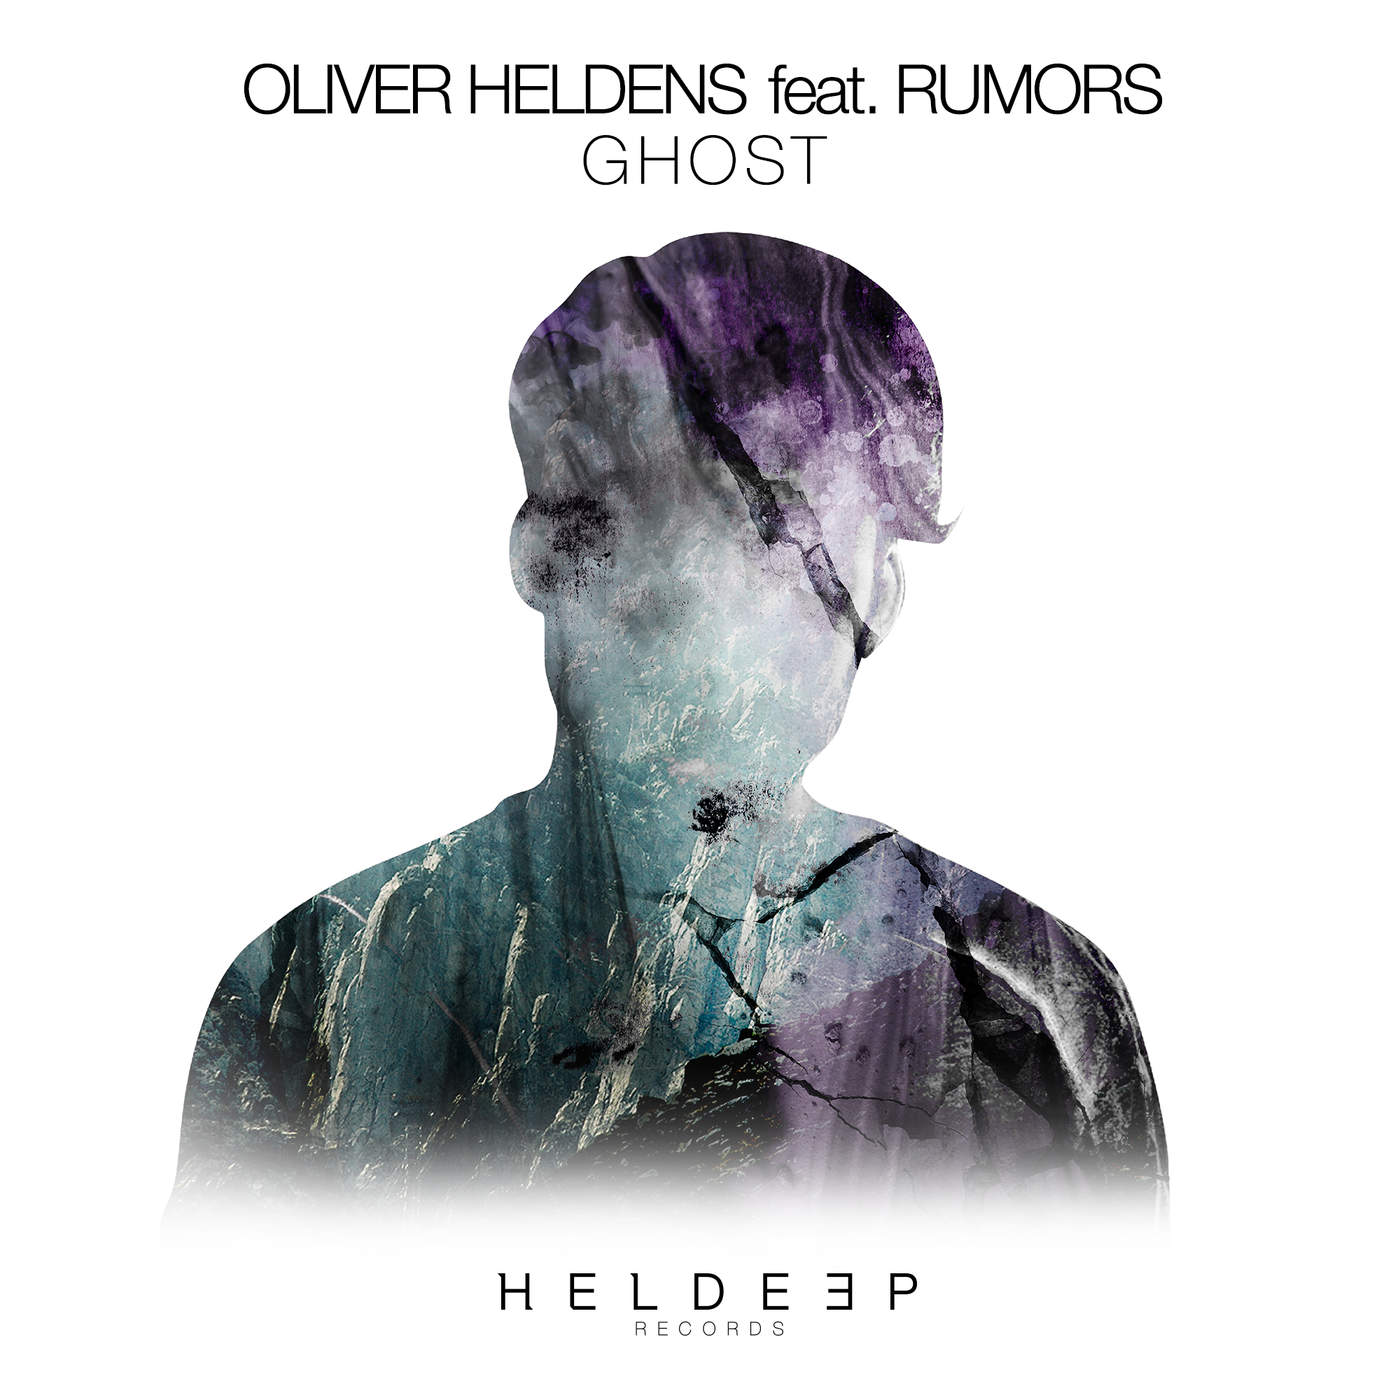 Oliver Heldens - Ghost (feat. Rumors) [Extended Mix] - Single Cover